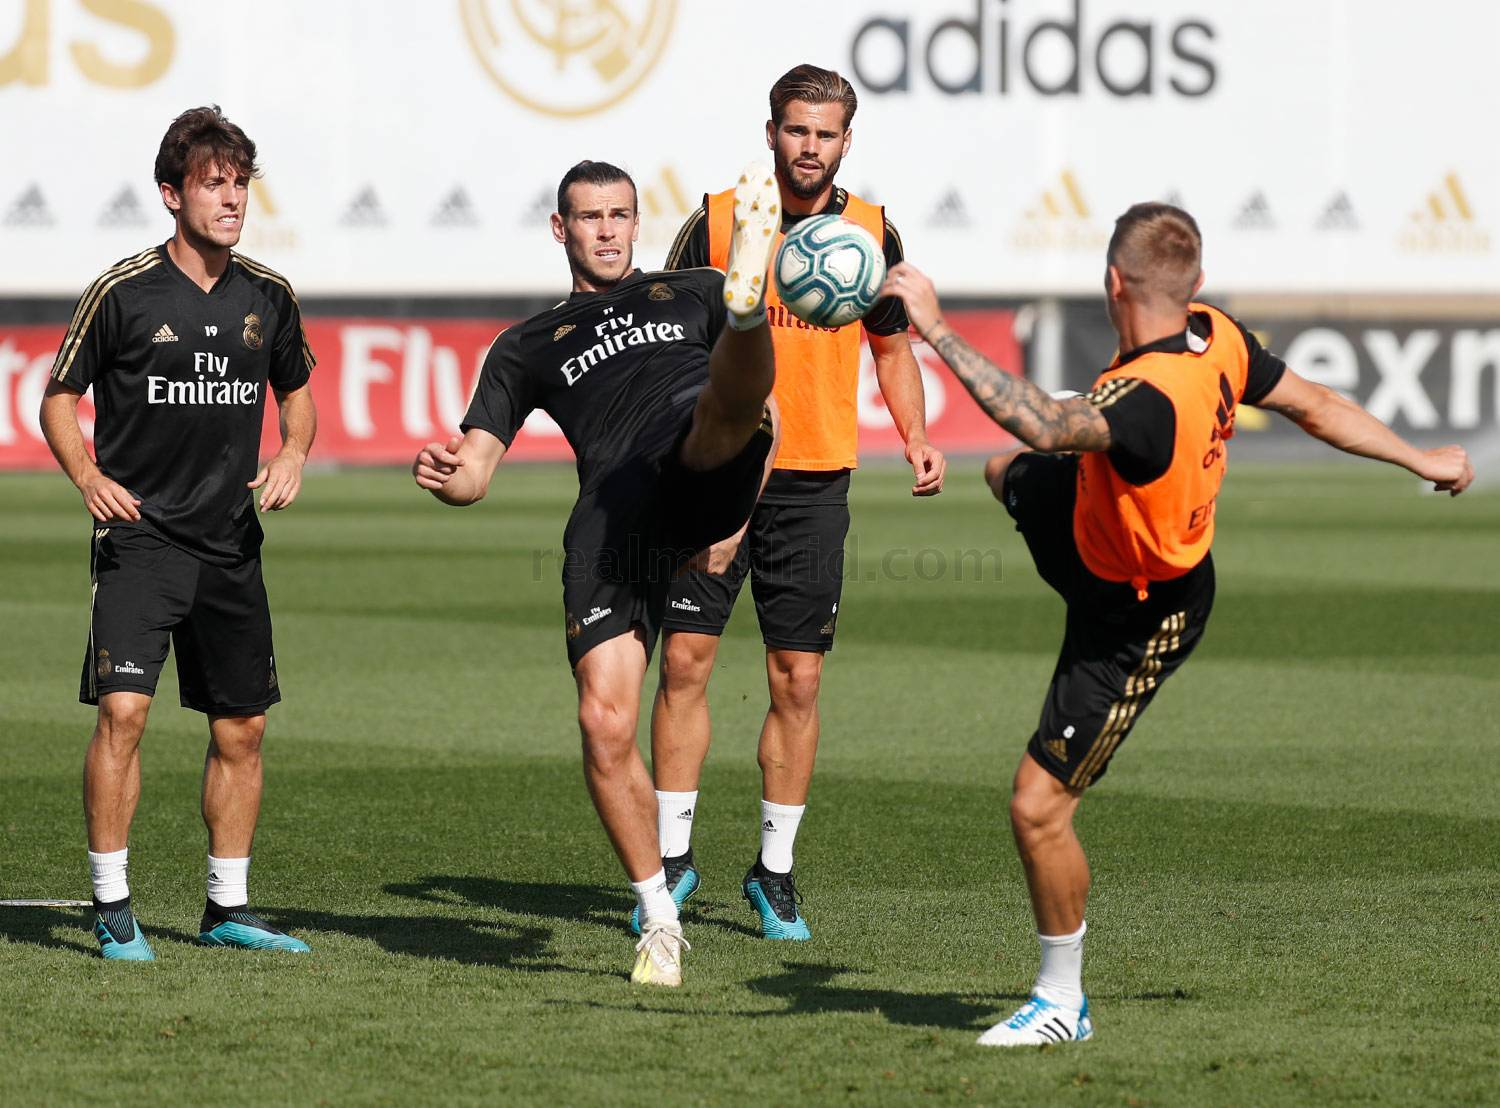 Real Madrid - Entrenamiento del Real Madrid  - 29-08-2019